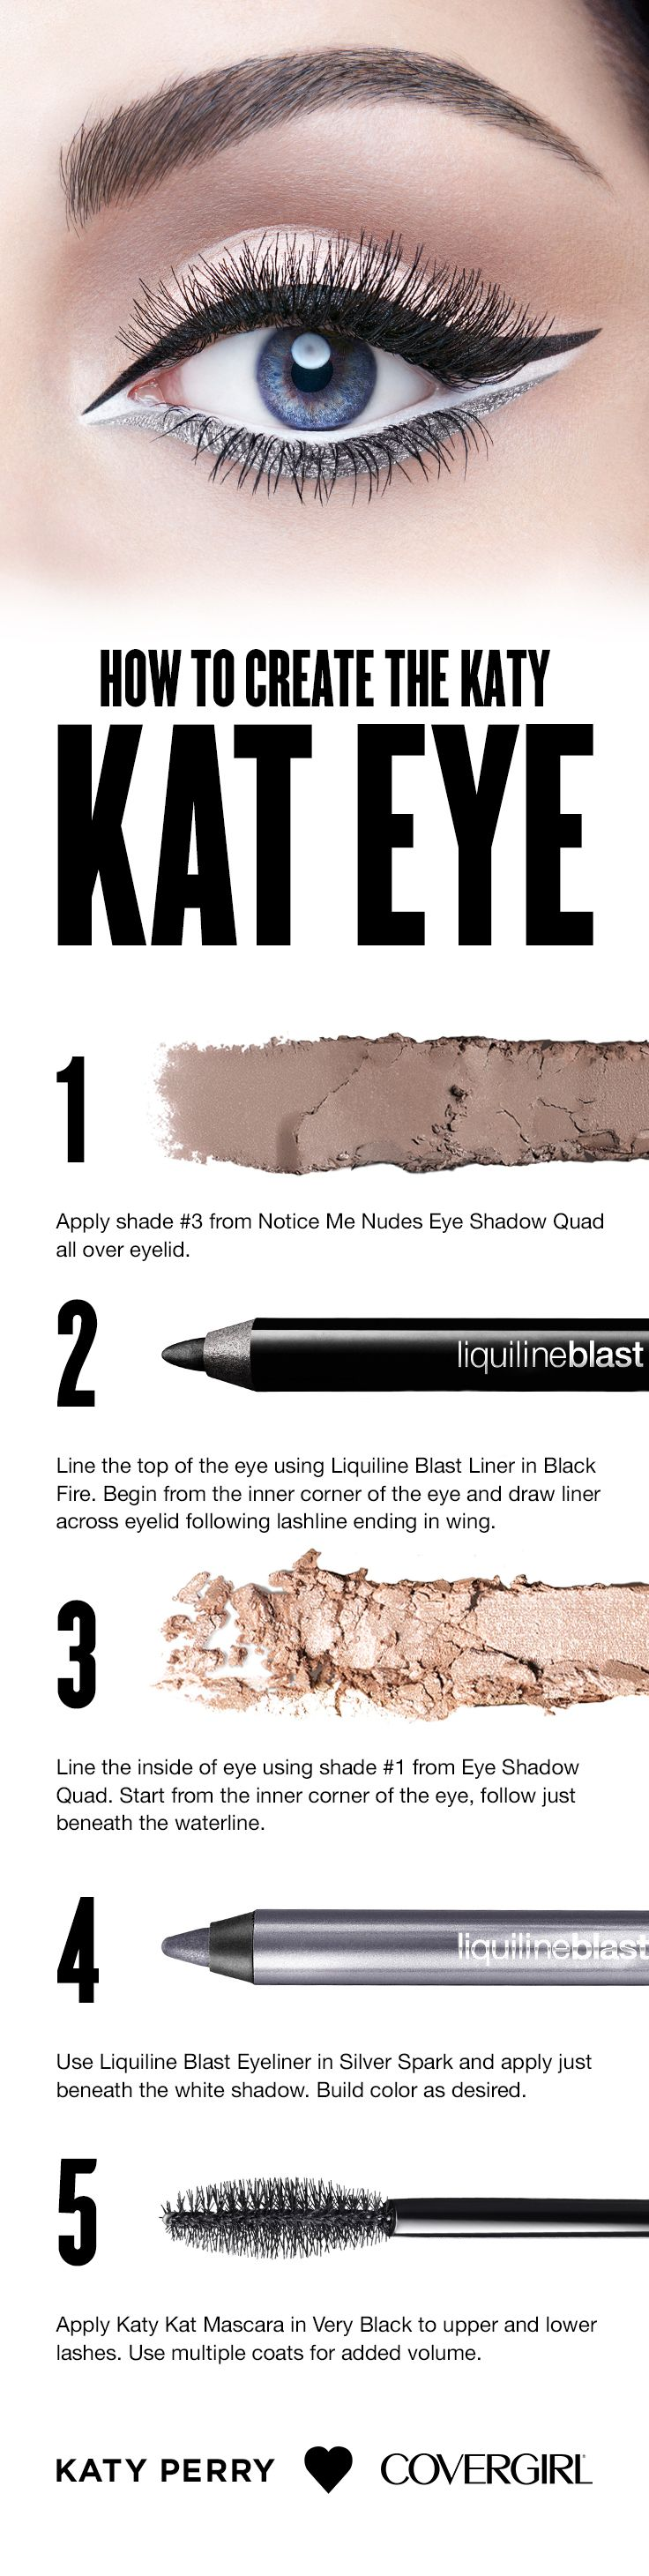 Liquiline Blast Eyeliner Review - Use this step by step guide to create a purrrr fect 360 kat